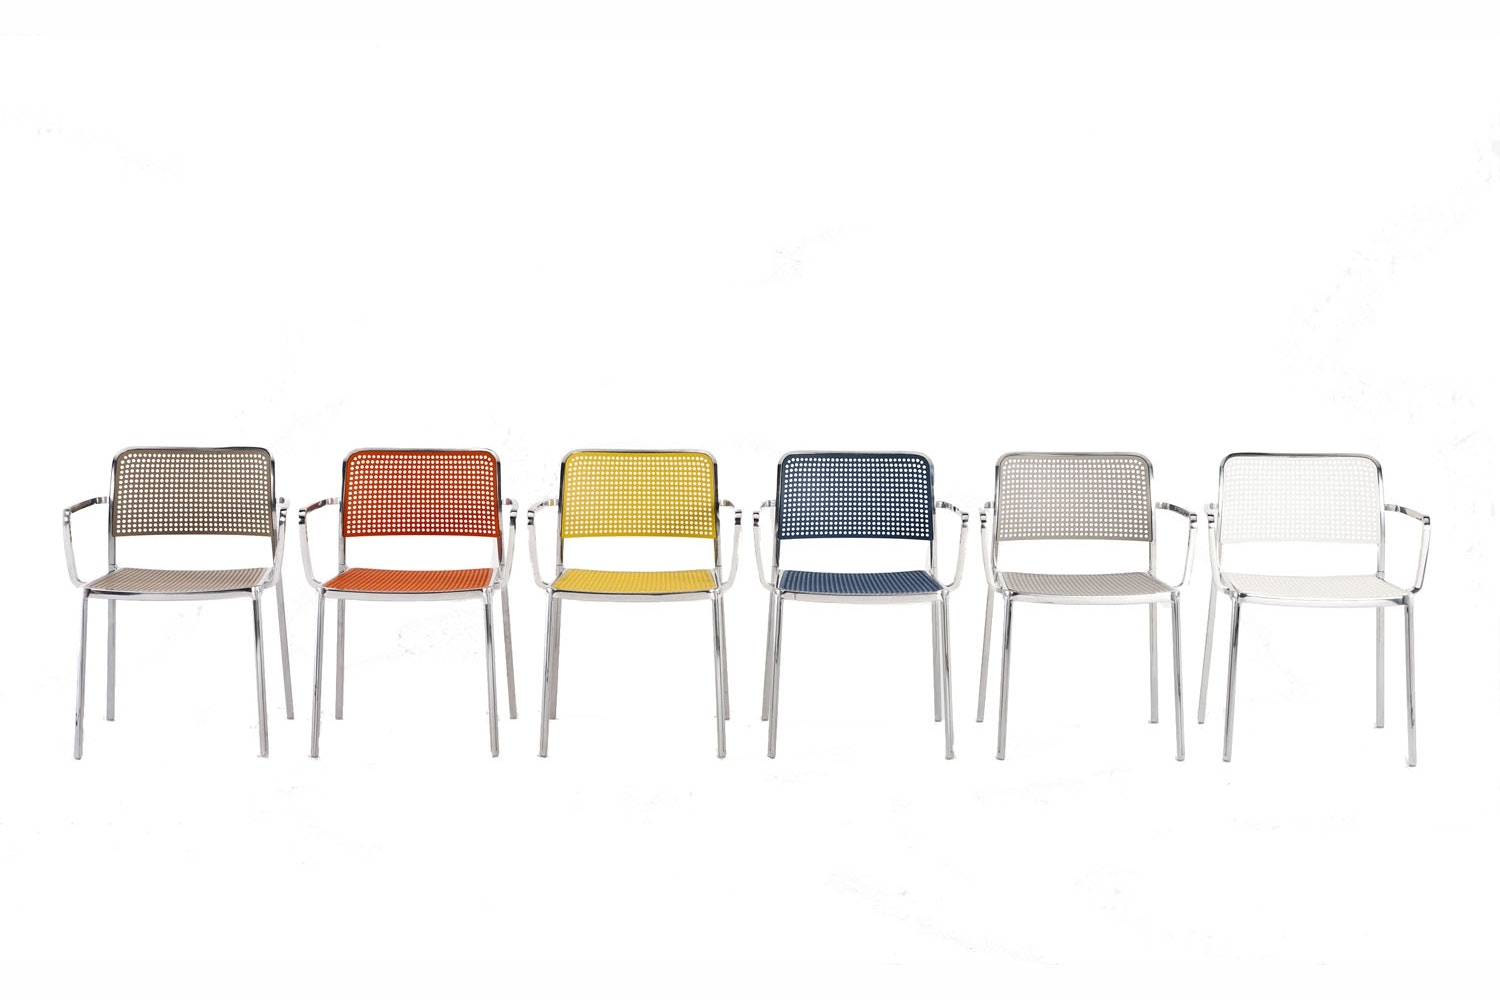 Audrey Shiny Chair with Arms by Piero Lissoni for Kartell